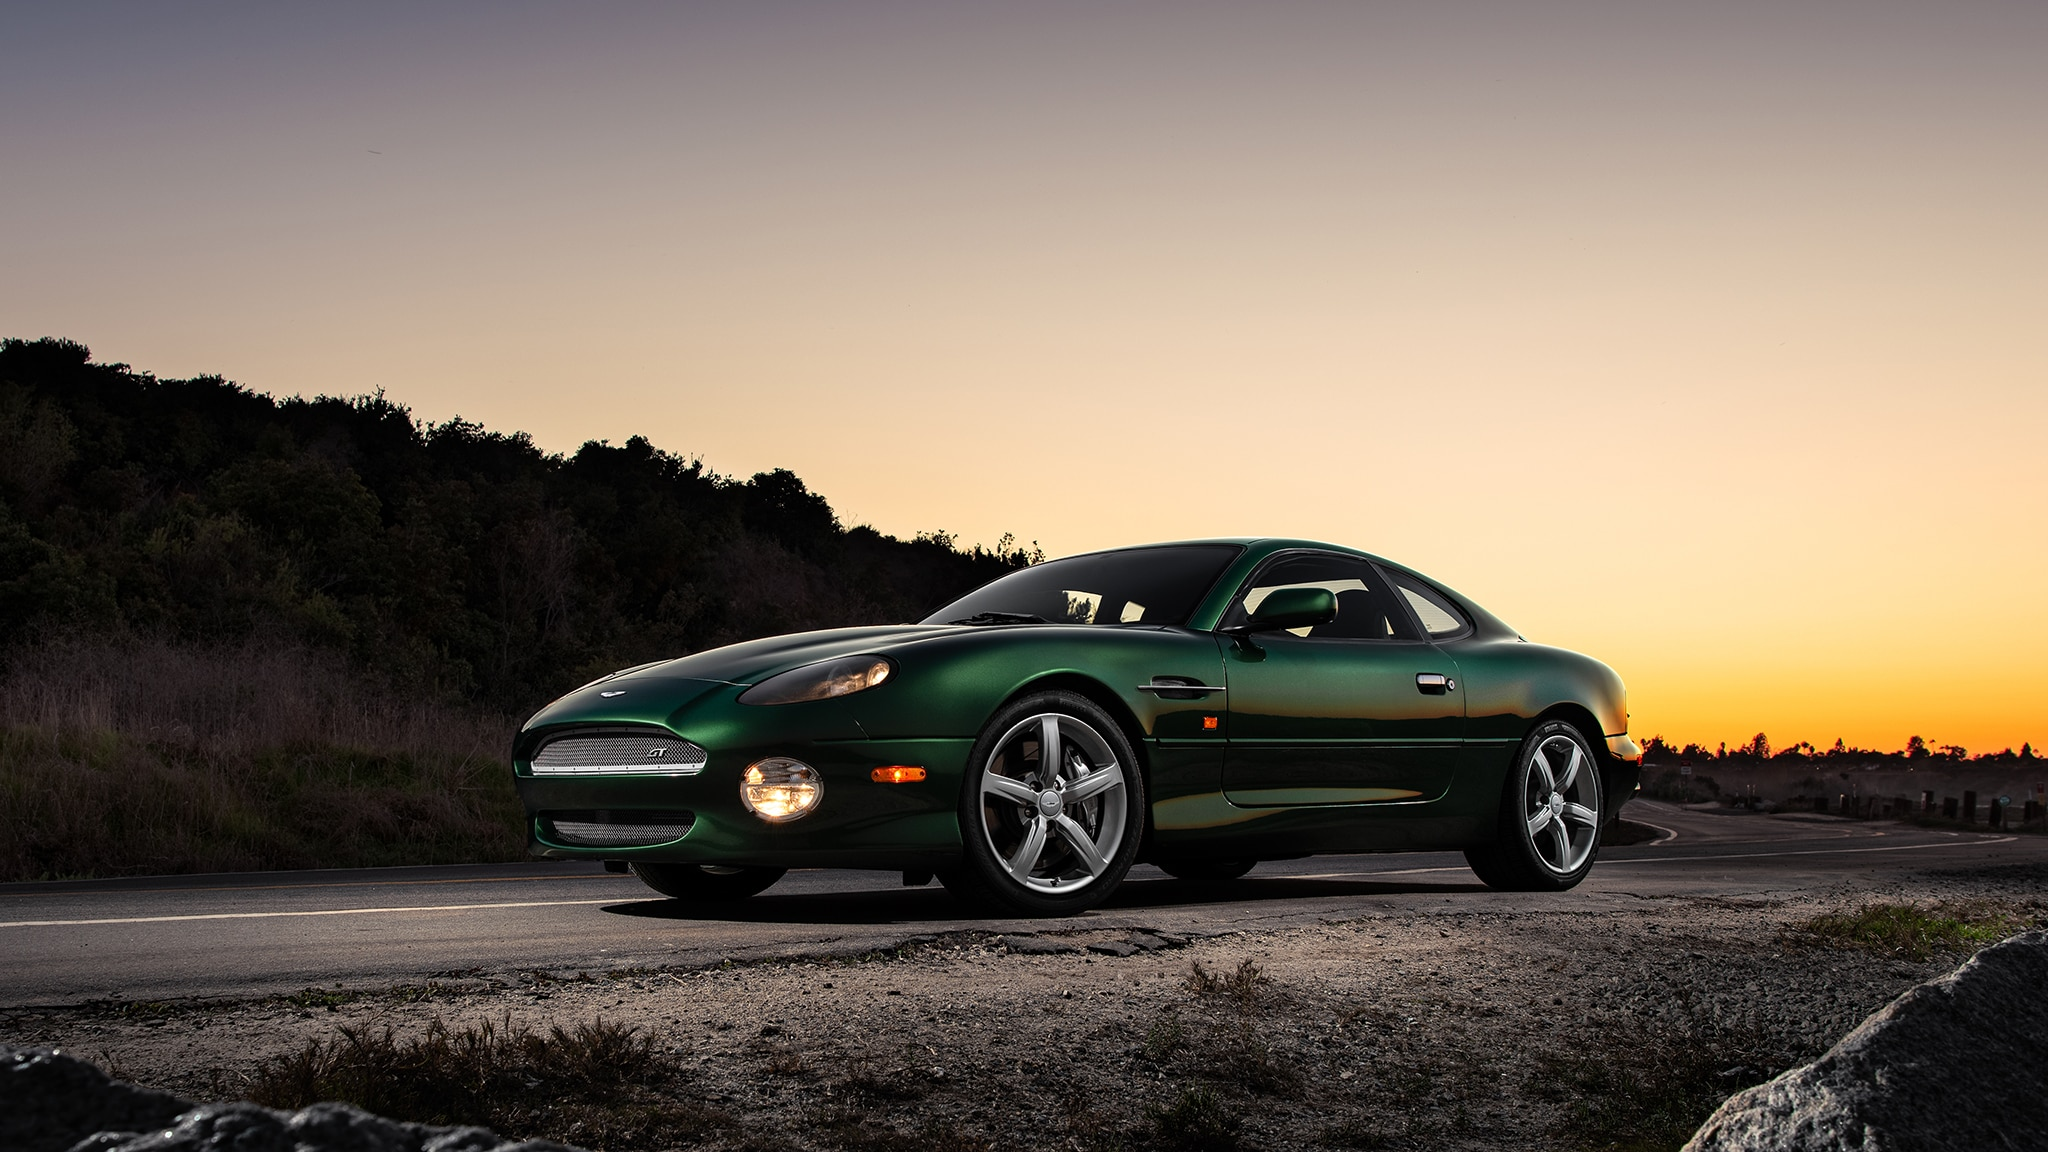 Aston Martin Db7 Gt Classic Drive Exclusive Features Technology Shout